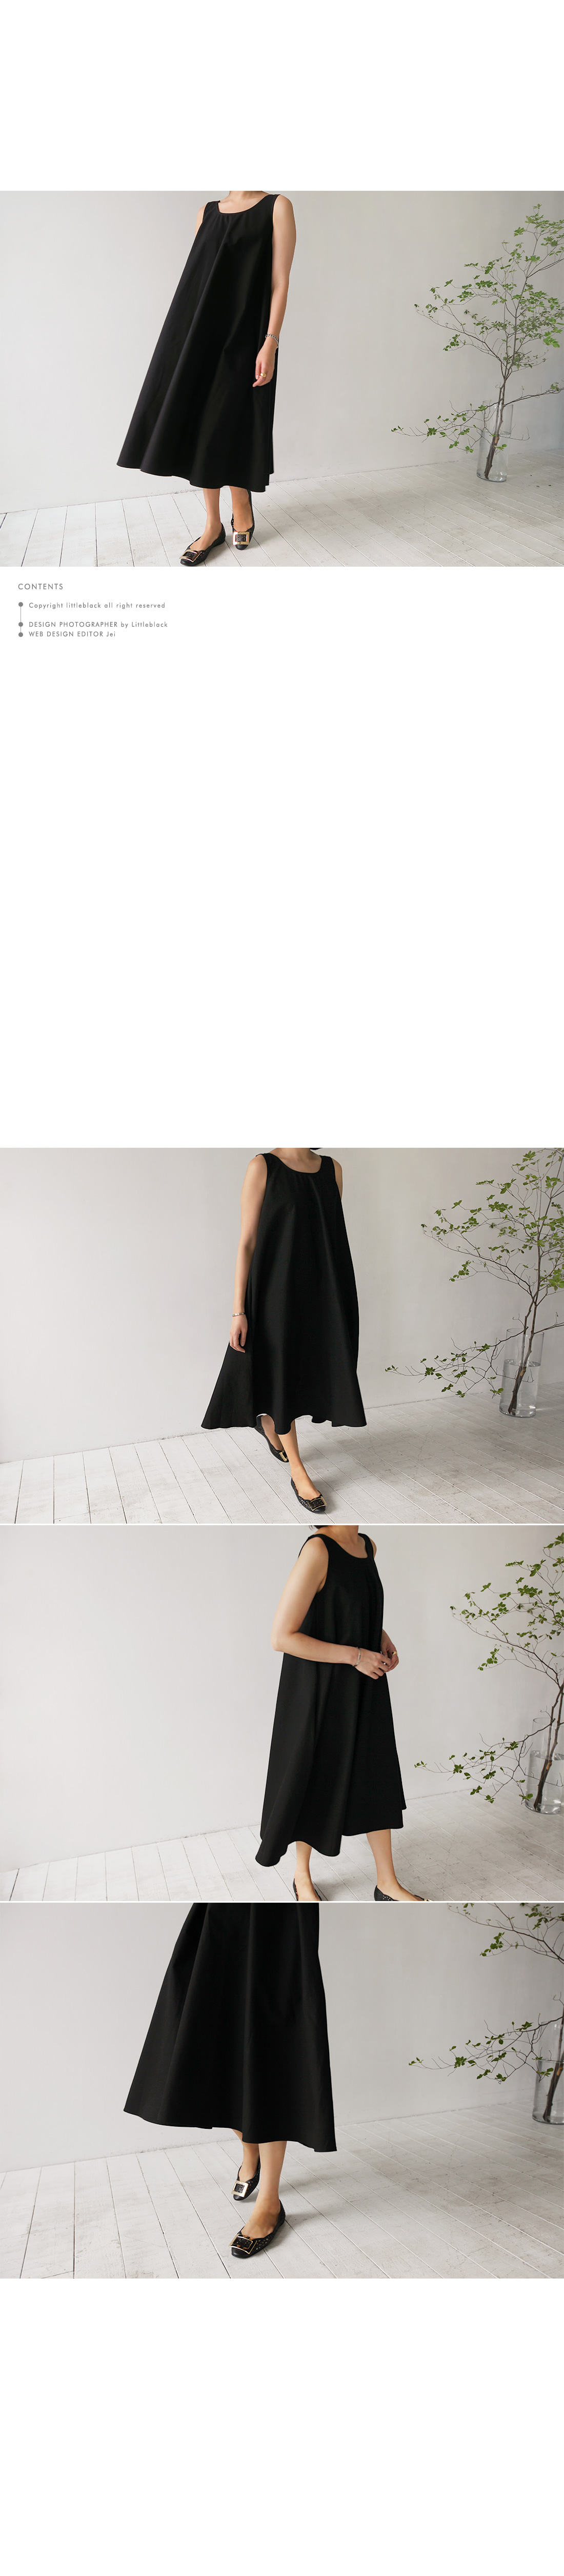 Scoop Neck Sleeveless Tent Dress|